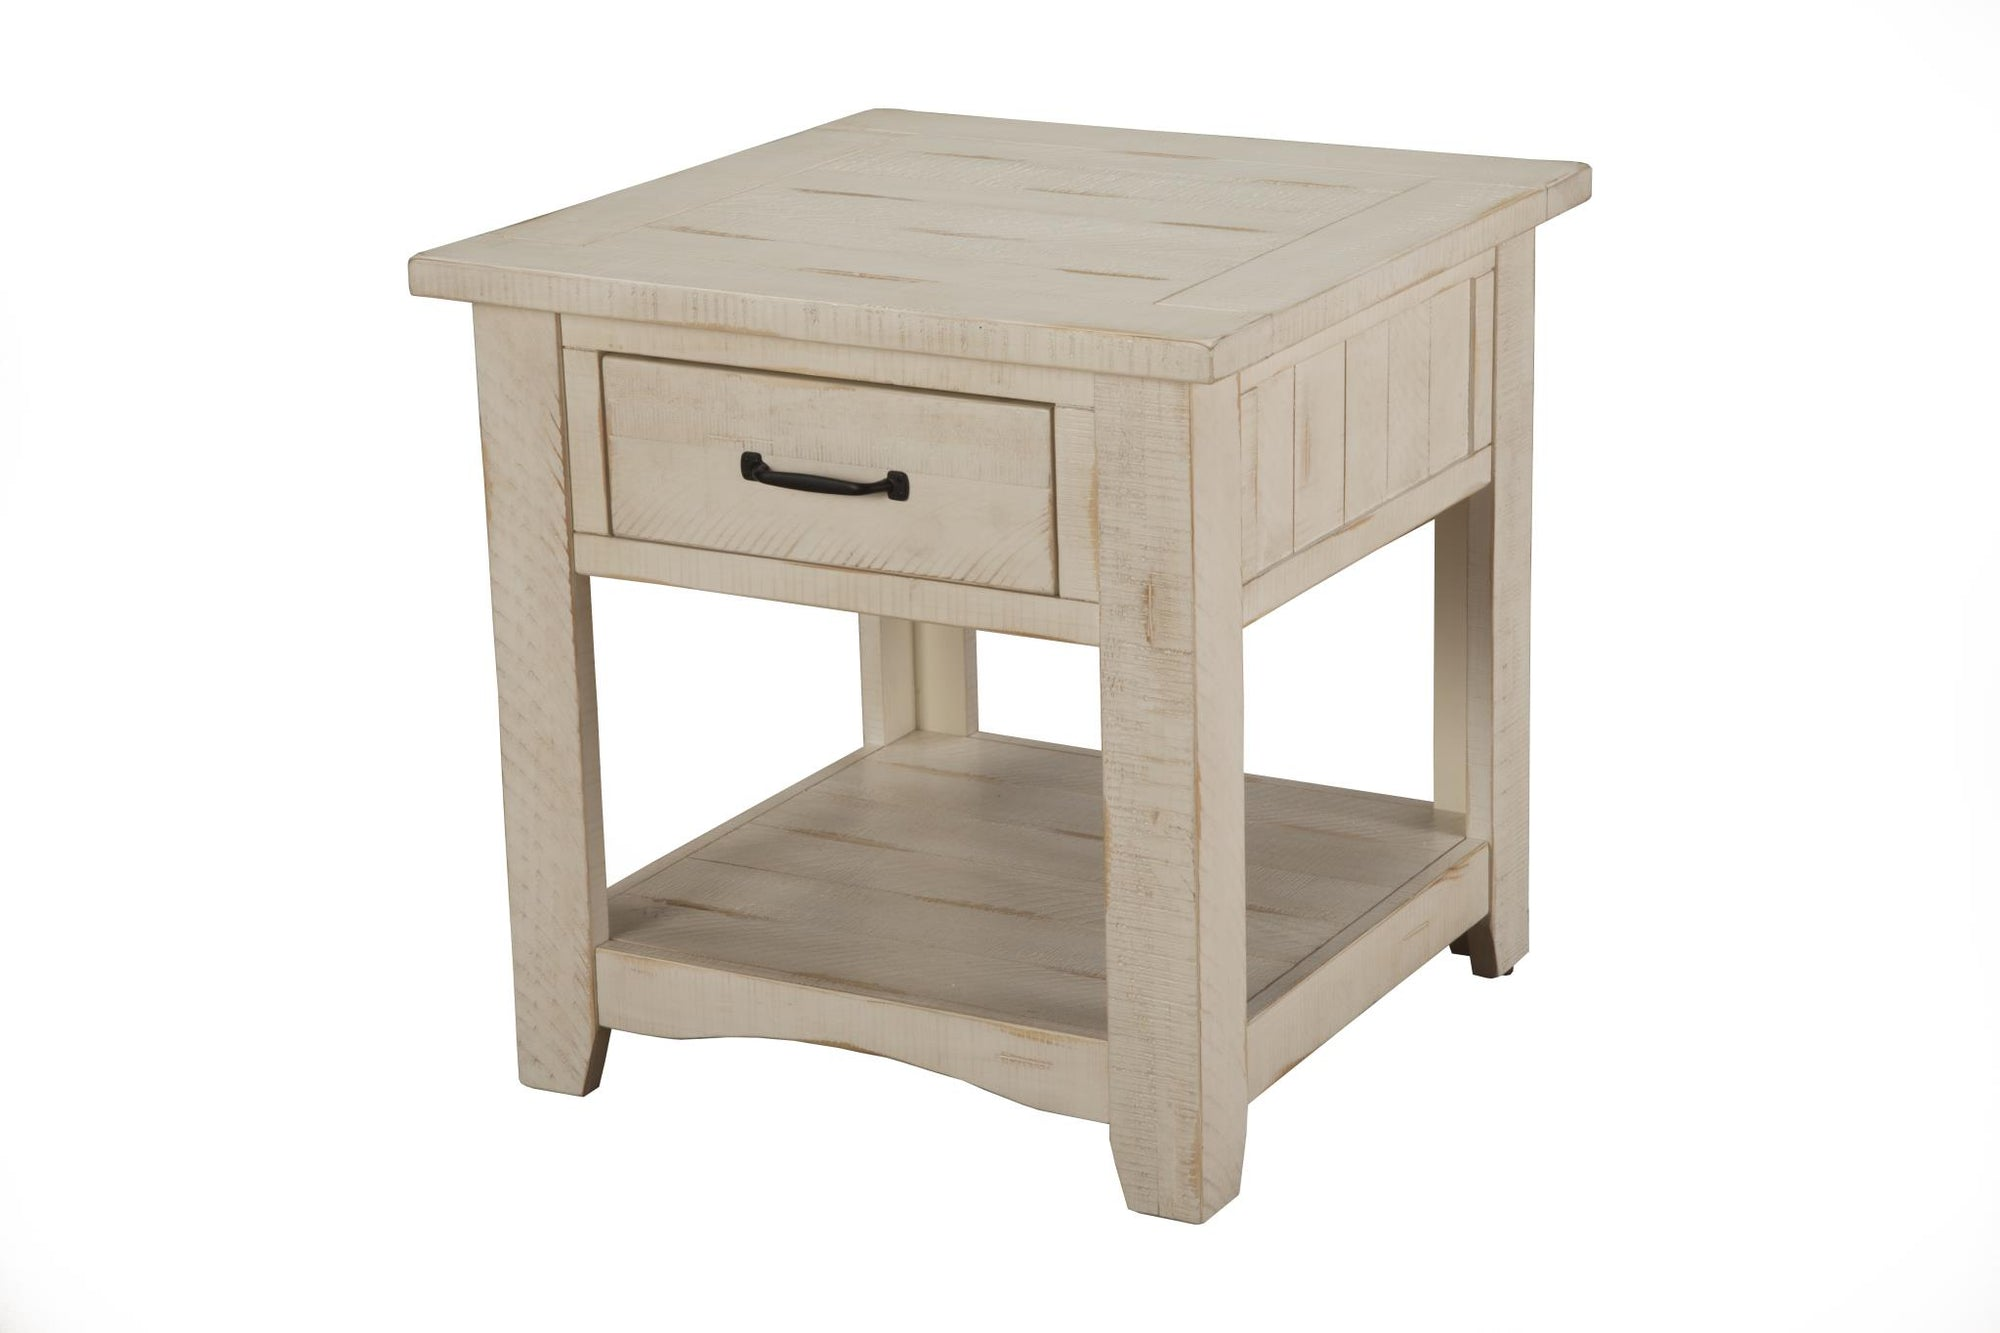 Rustic Occasional Nightstand/End table  - Antique white